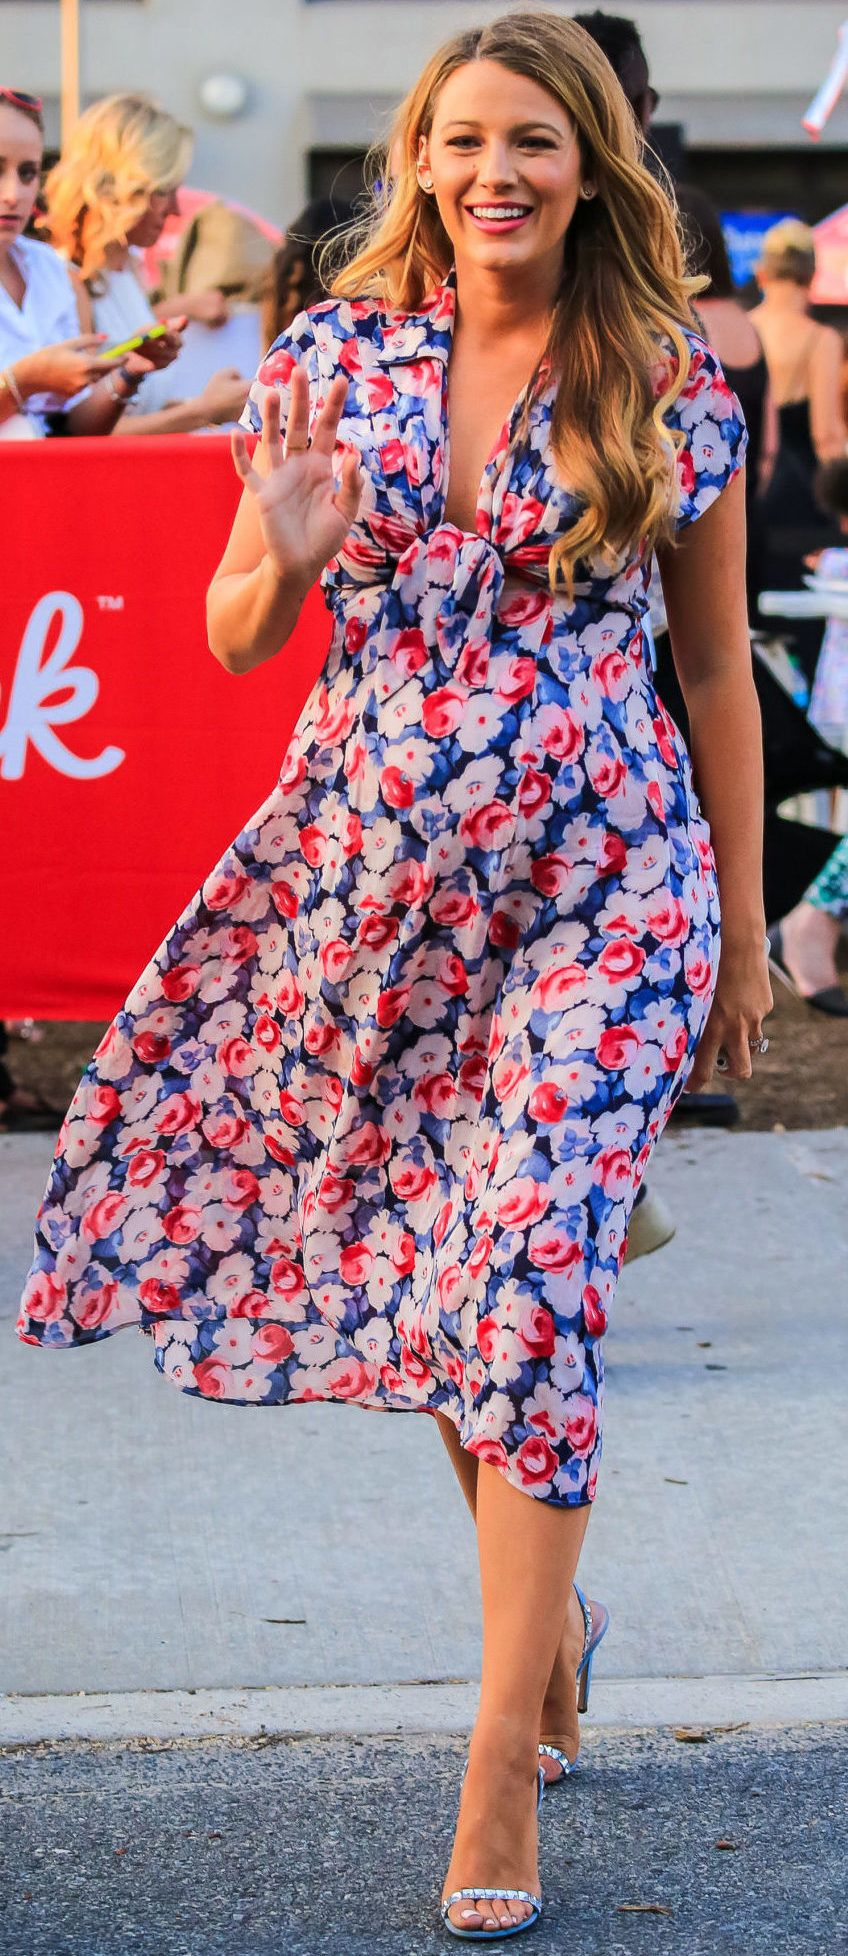 a36bdf9250a8b Calling all stylish moms-to-be: Nab actress Blake Lively's impeccable pregnancy  style with these flattering dresses—all under a Benjamin. #maternity #style